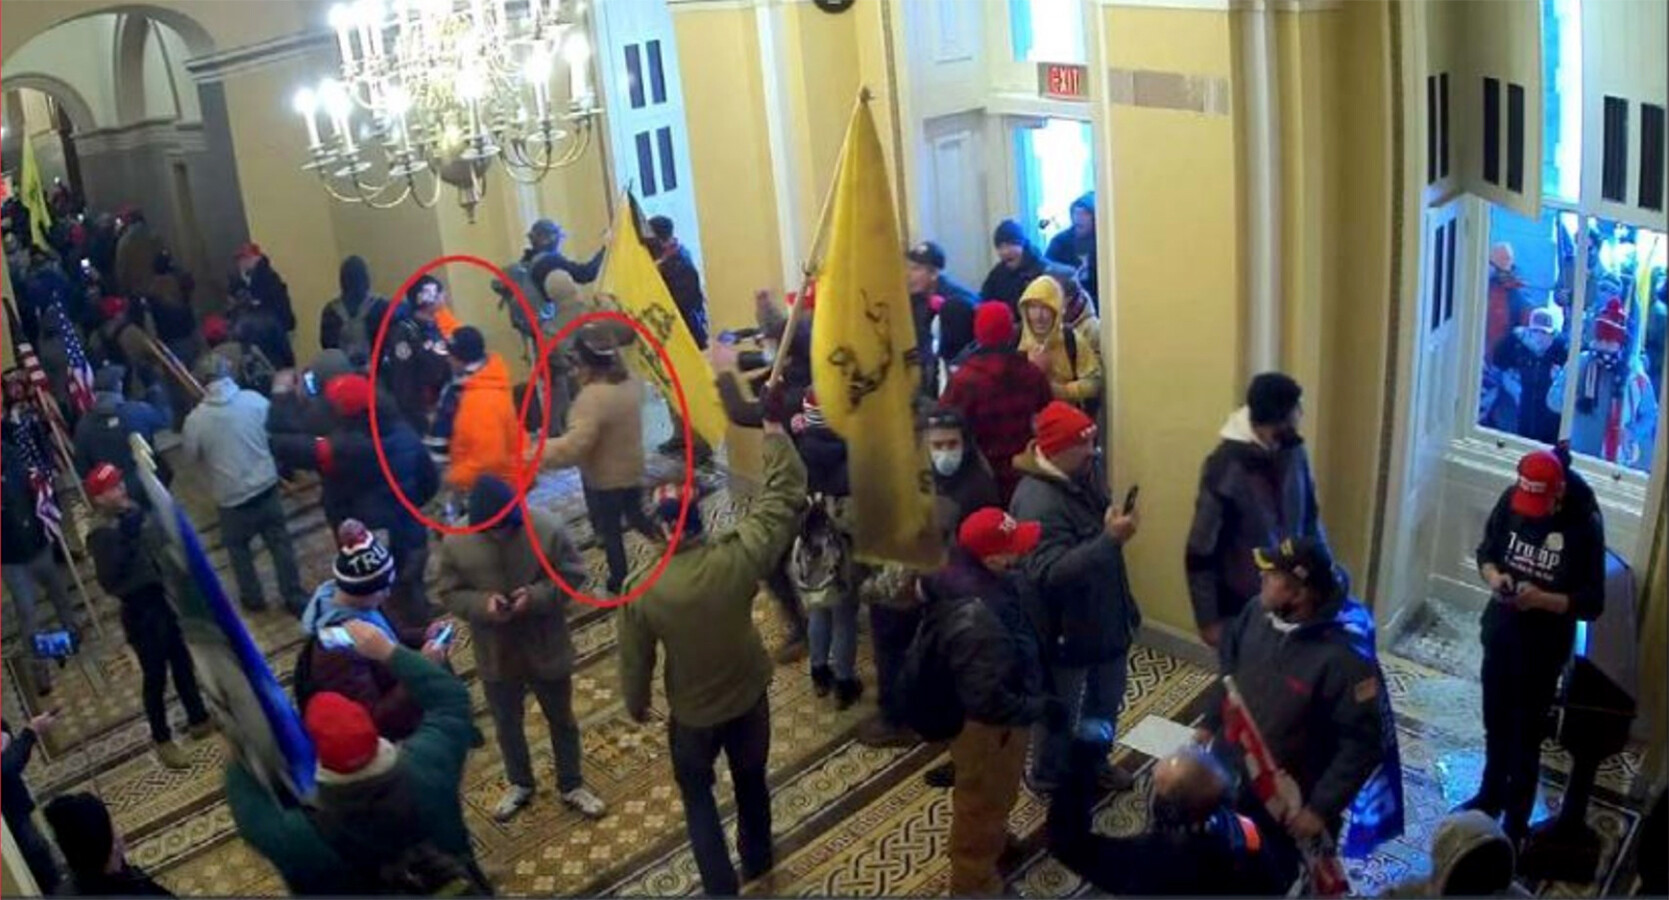 2 Capitol rioters plead guilty while House hearing unfolds; judge calls their behavior 'reprehensible'